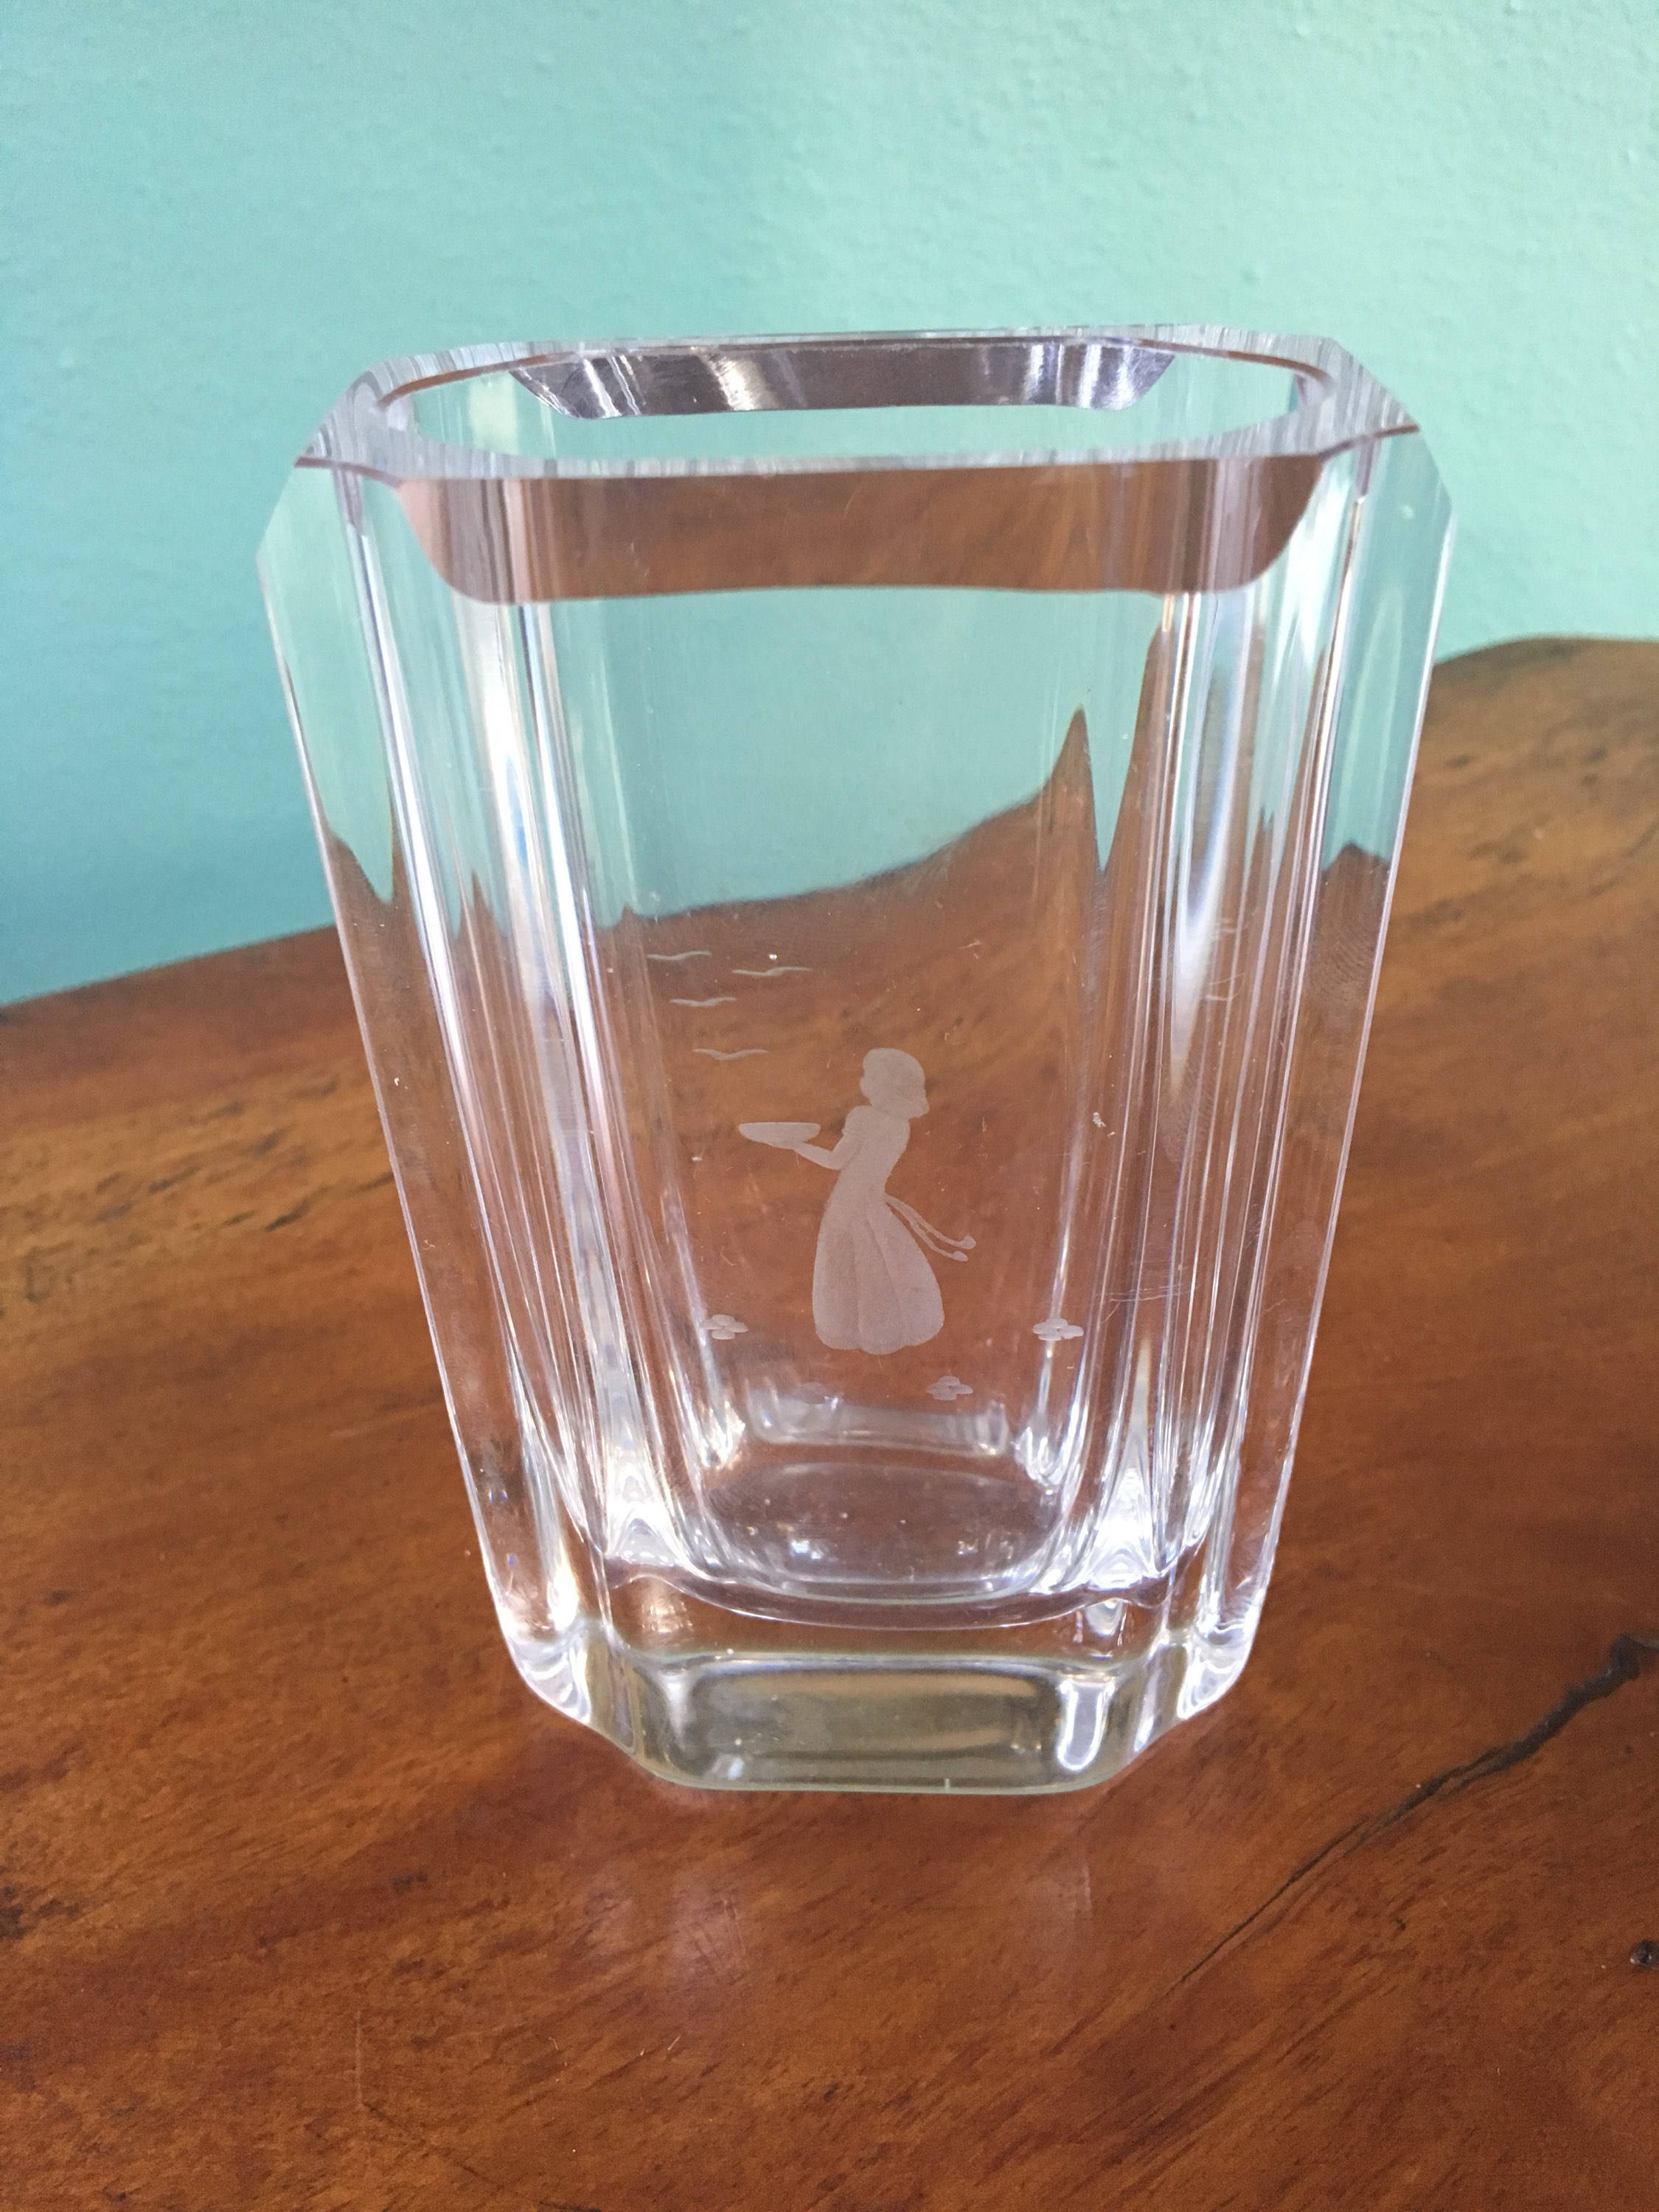 vintage orrefors crystal vase of vintage orrefors skruf crystal vase girl with birds etched etsy for dc29fc294c28ezoom